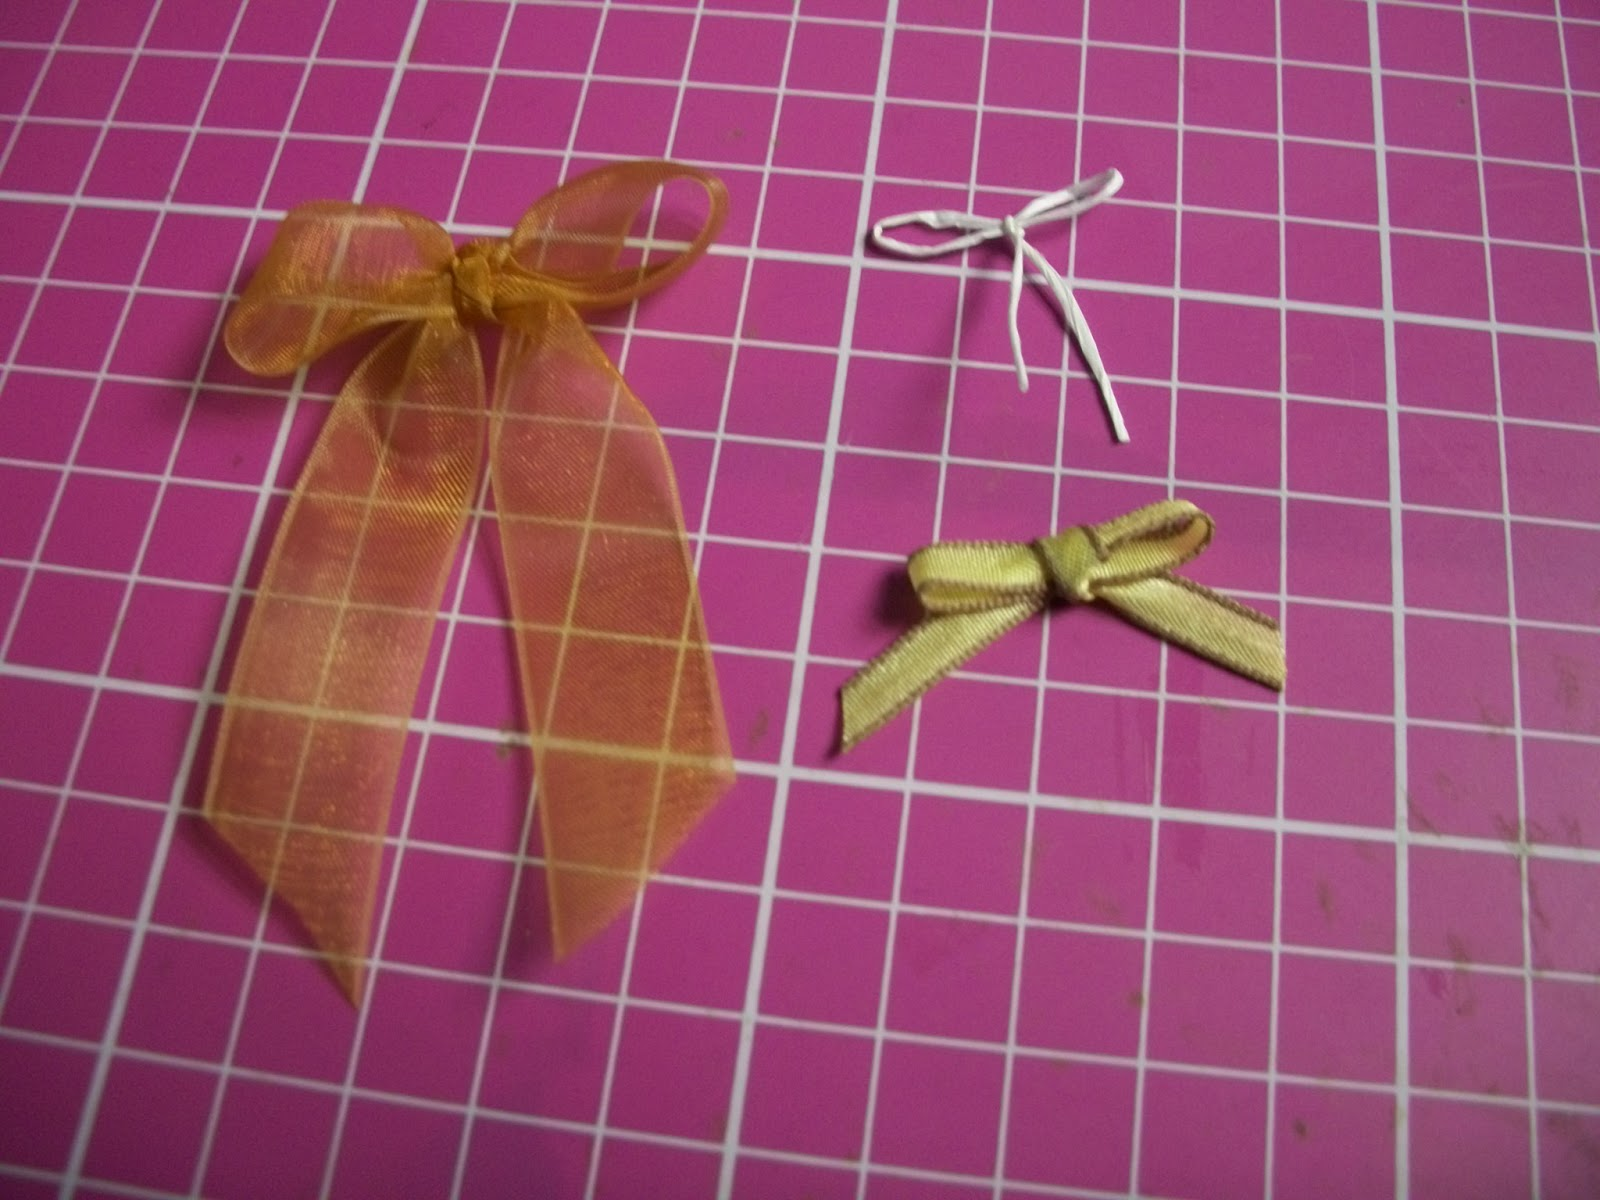 Here are the bows using different numbers of tines (must be an even